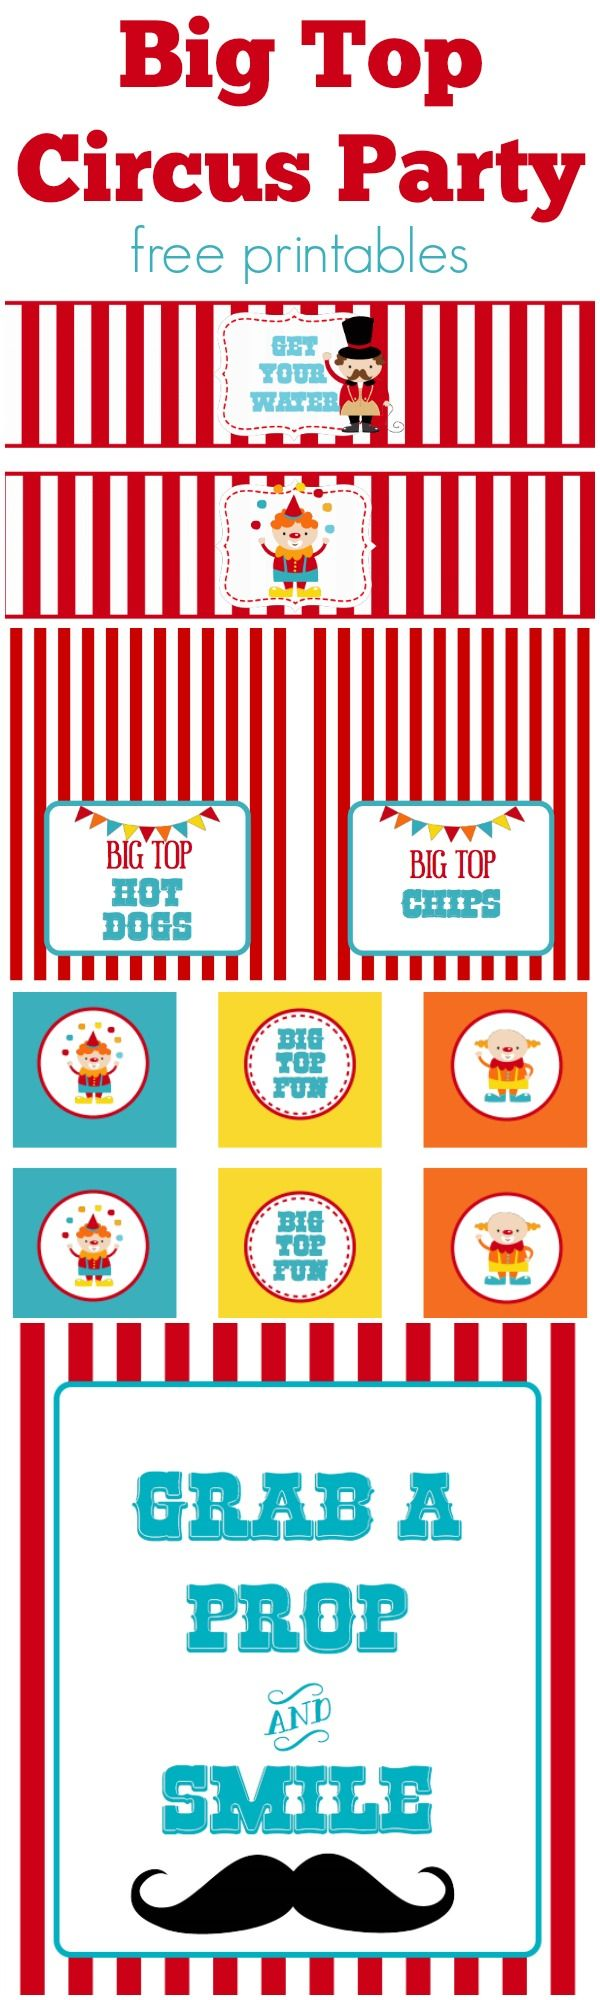 picture about Carnival Printable titled Circus Get together No cost Printables Totally free Printables Circus